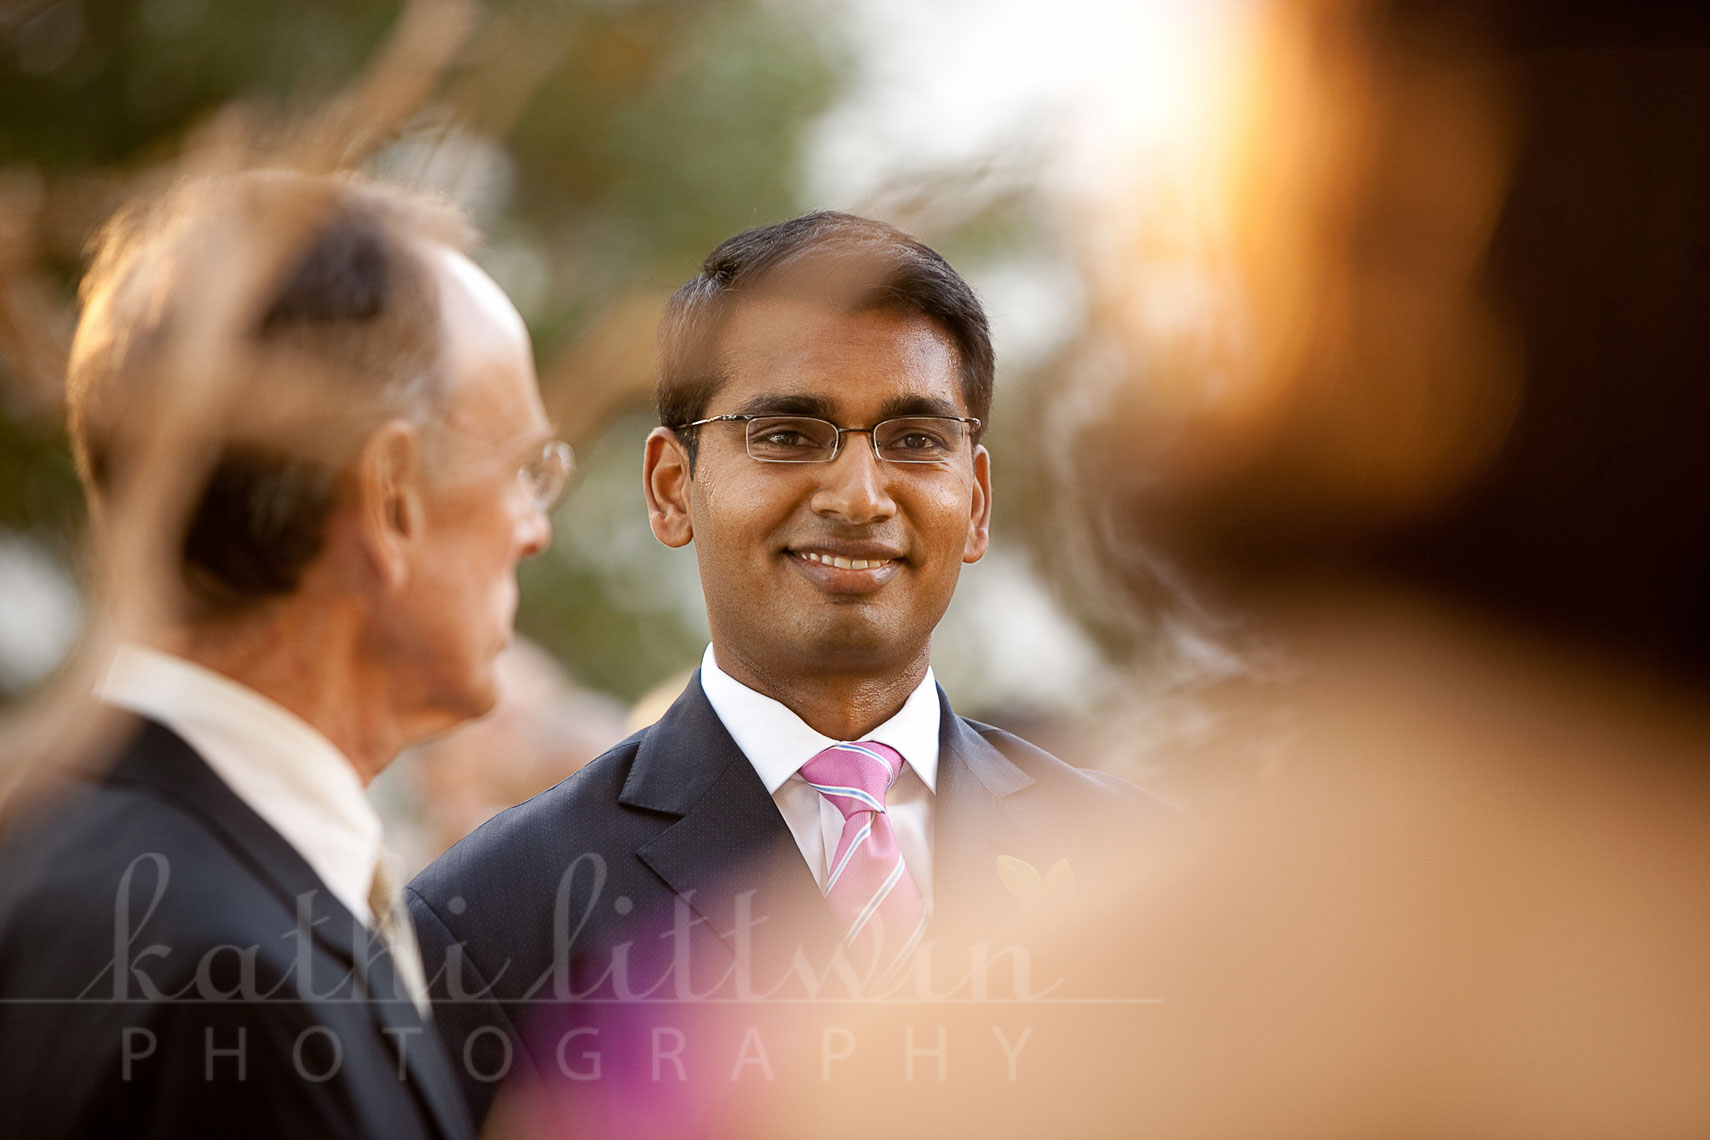 Kathi_Littwin_Photography_Mashomack_wedding_3043